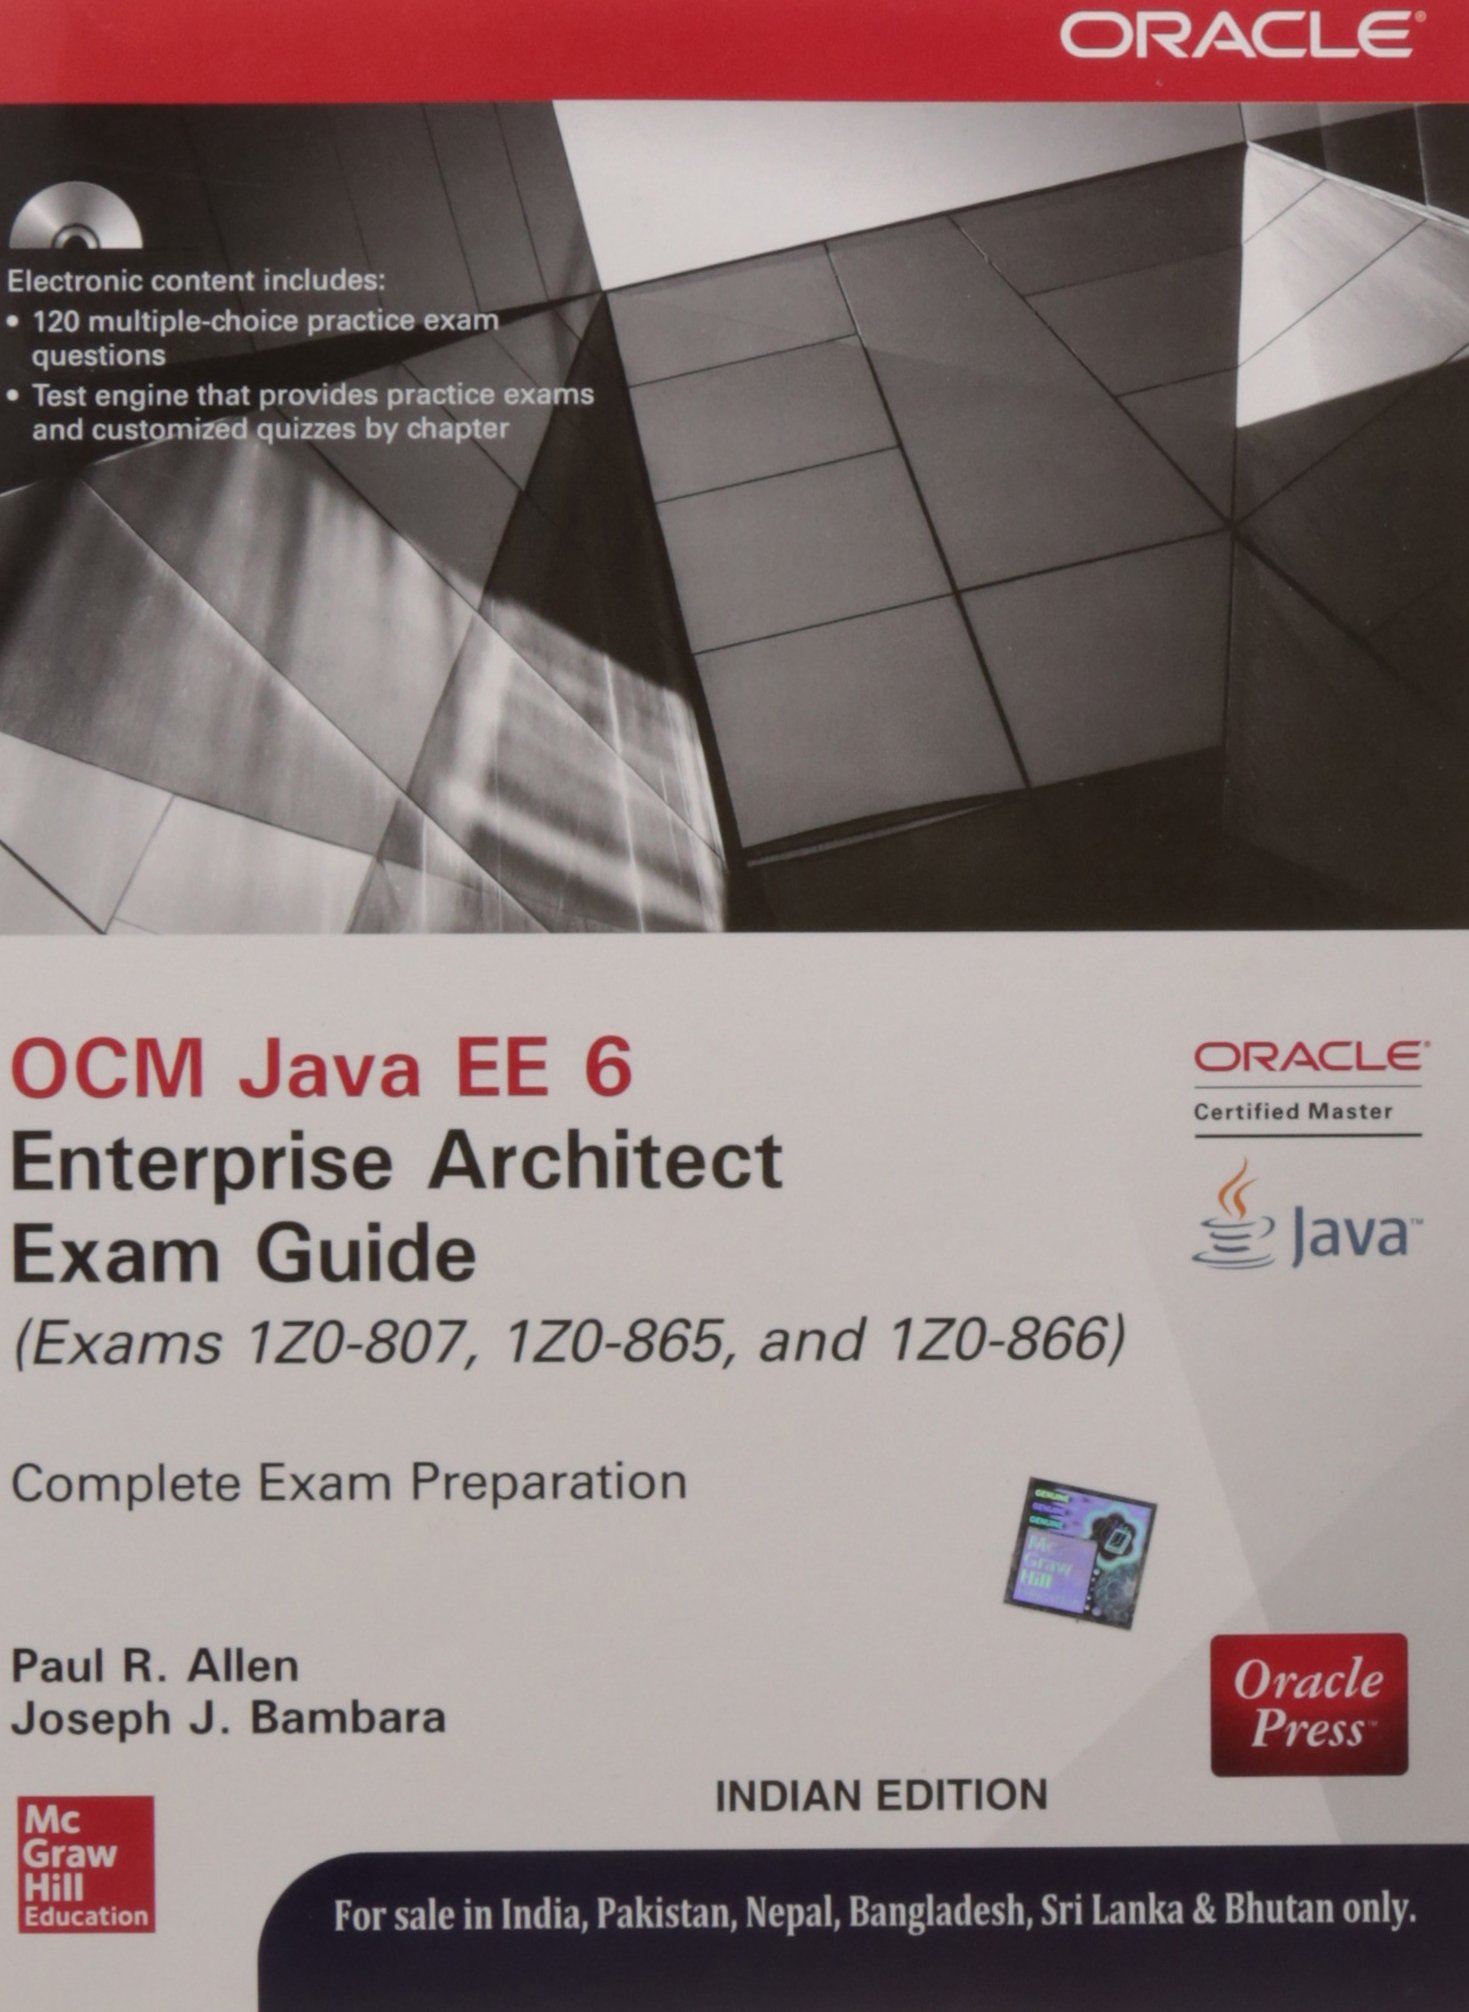 Ocm Java Ee 6 Enterprise Architect Exam Guide Paperback Na Amazon